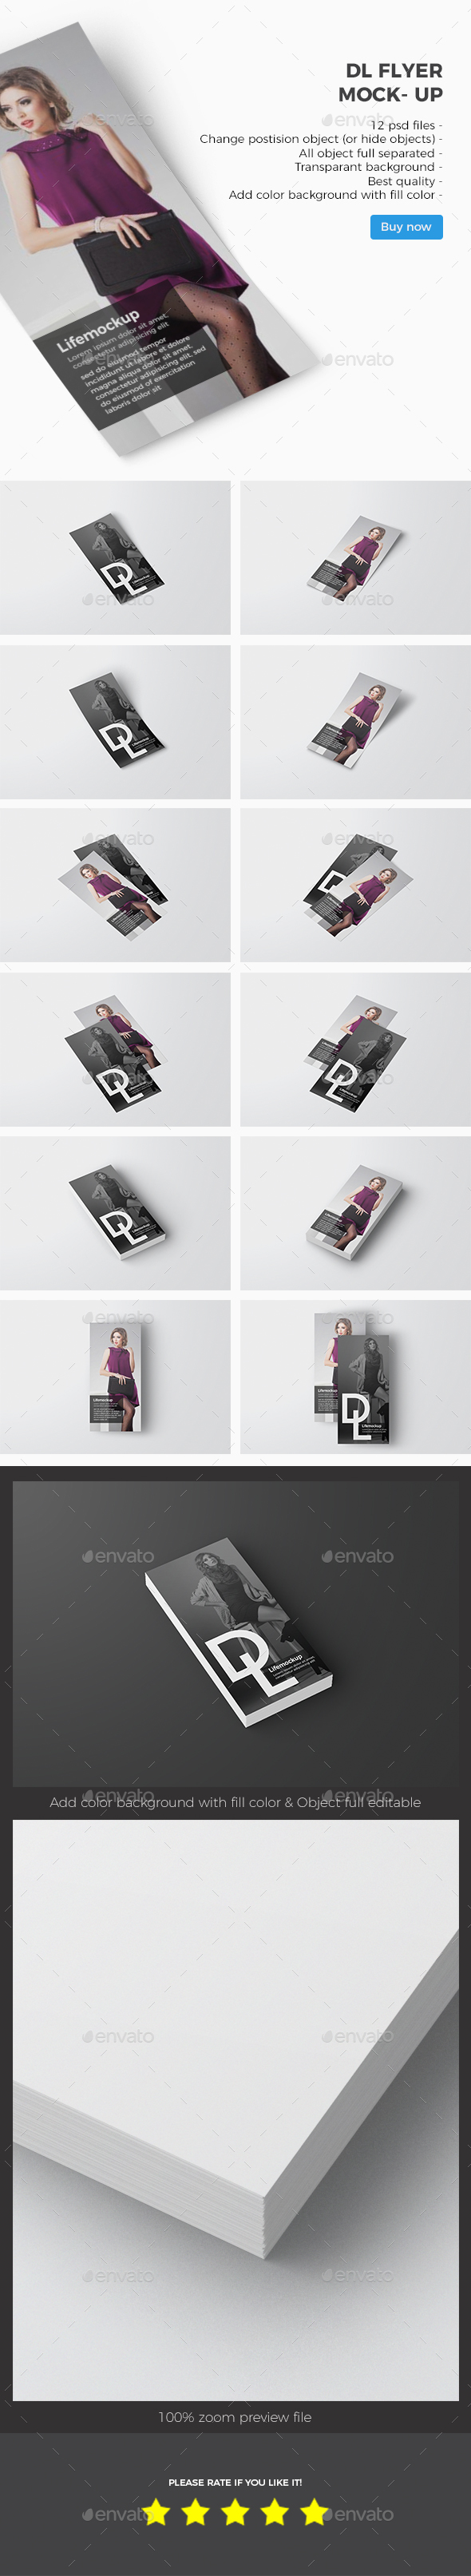 GraphicRiver DL Flyer Mockup 21031961